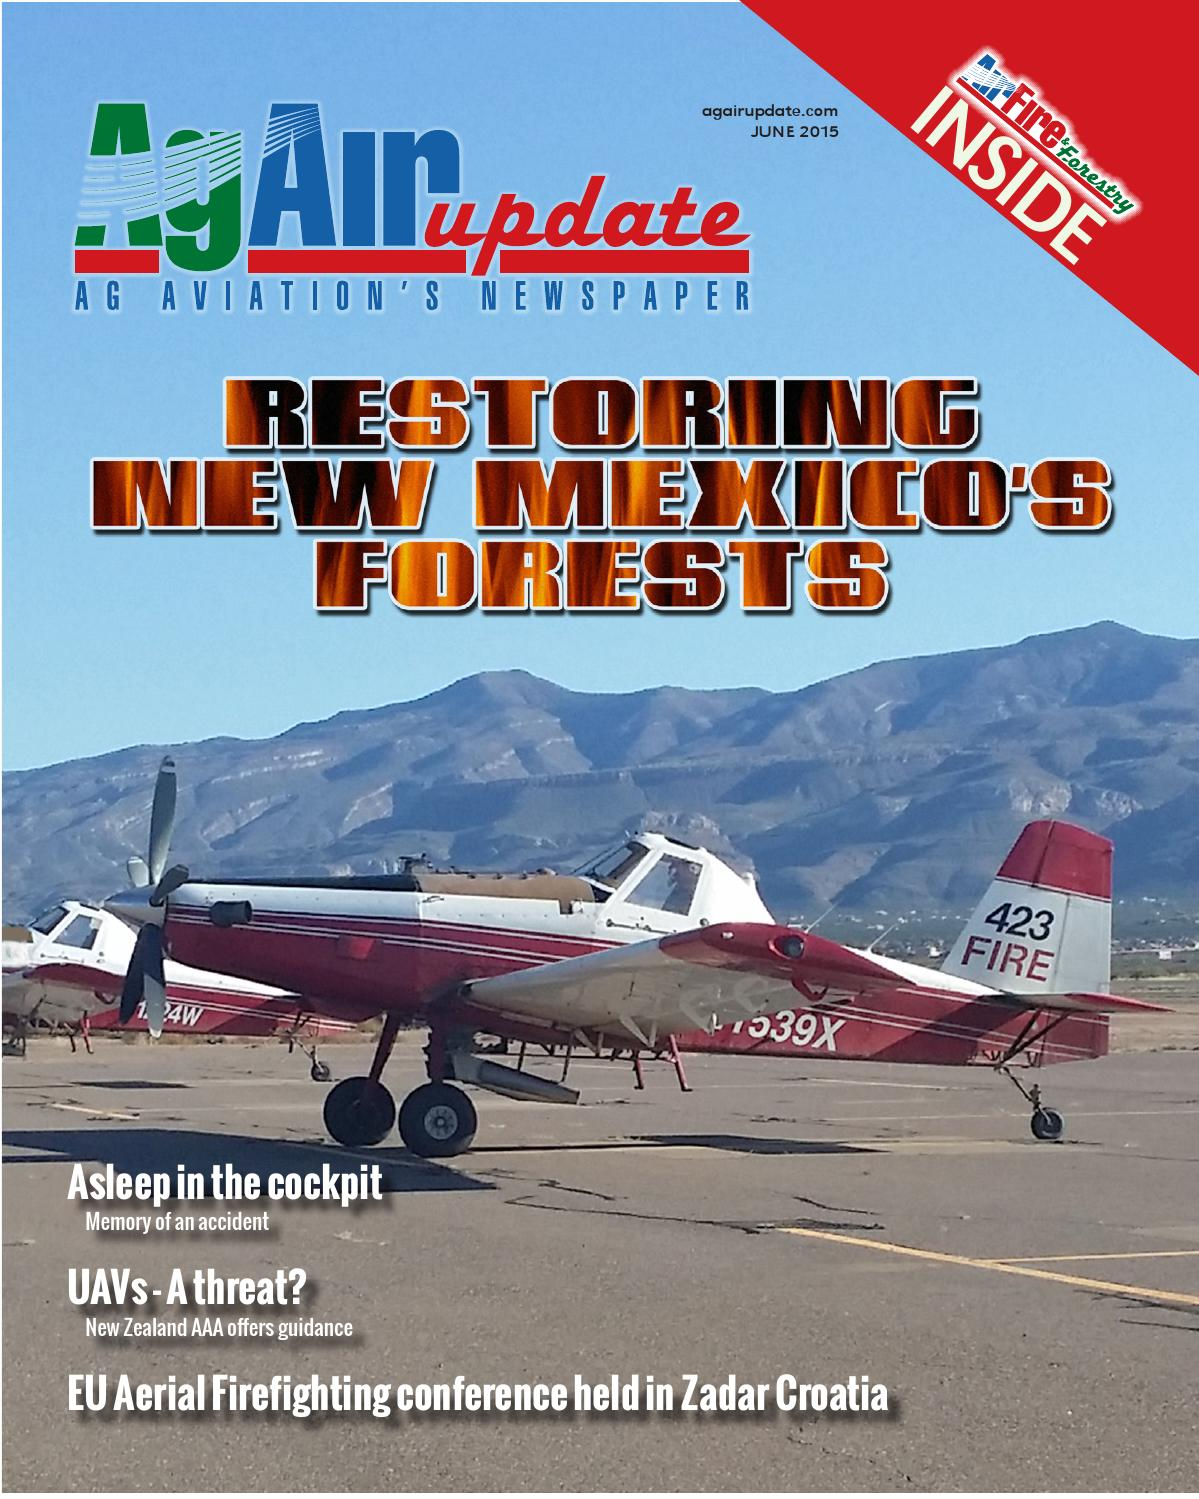 June 2015 US Edition in